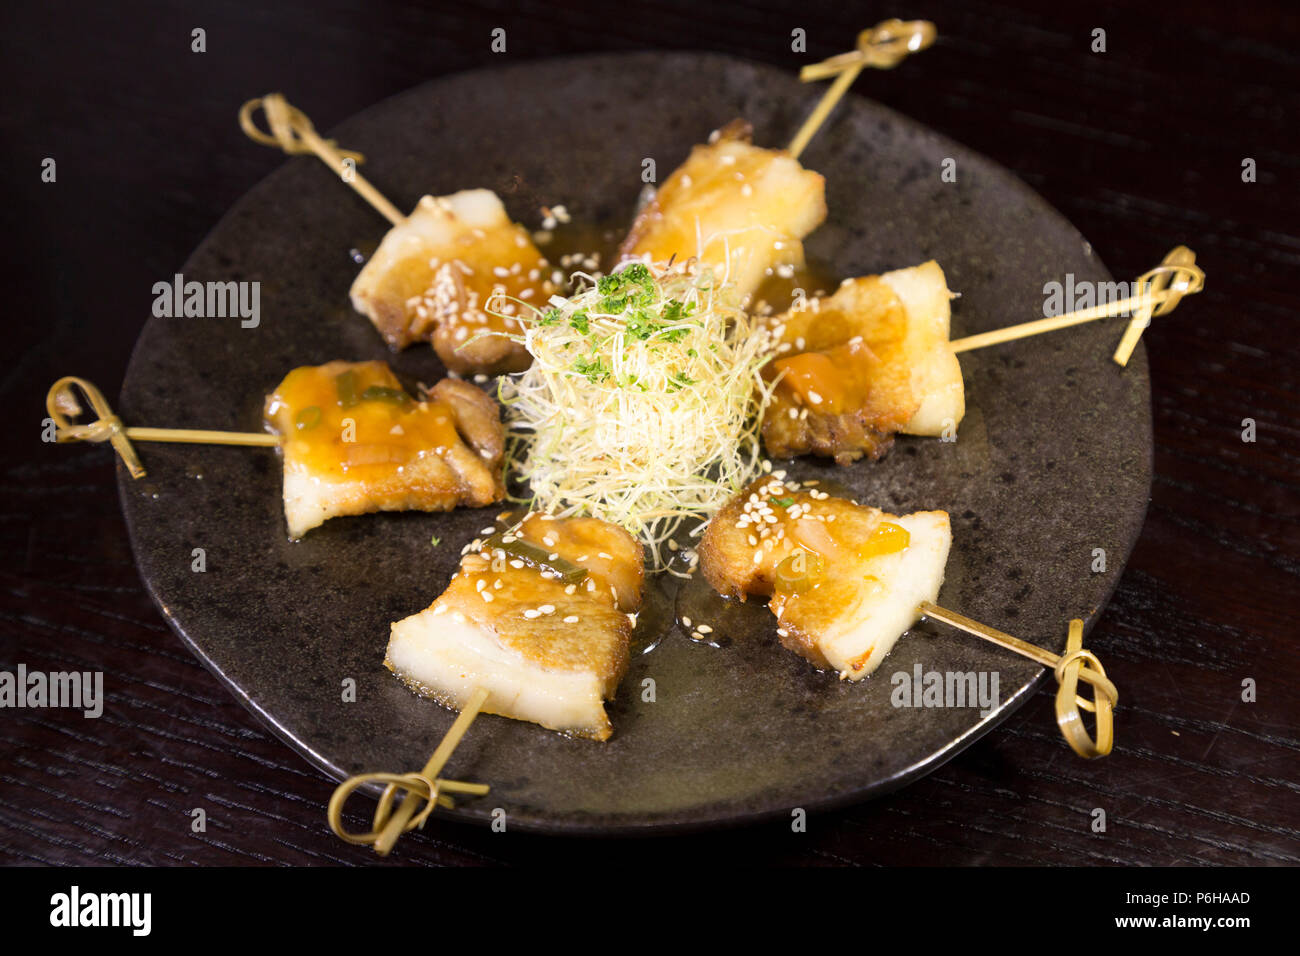 Grilled pork belly served on skewers. The dish features Asian spices.. - Stock Image